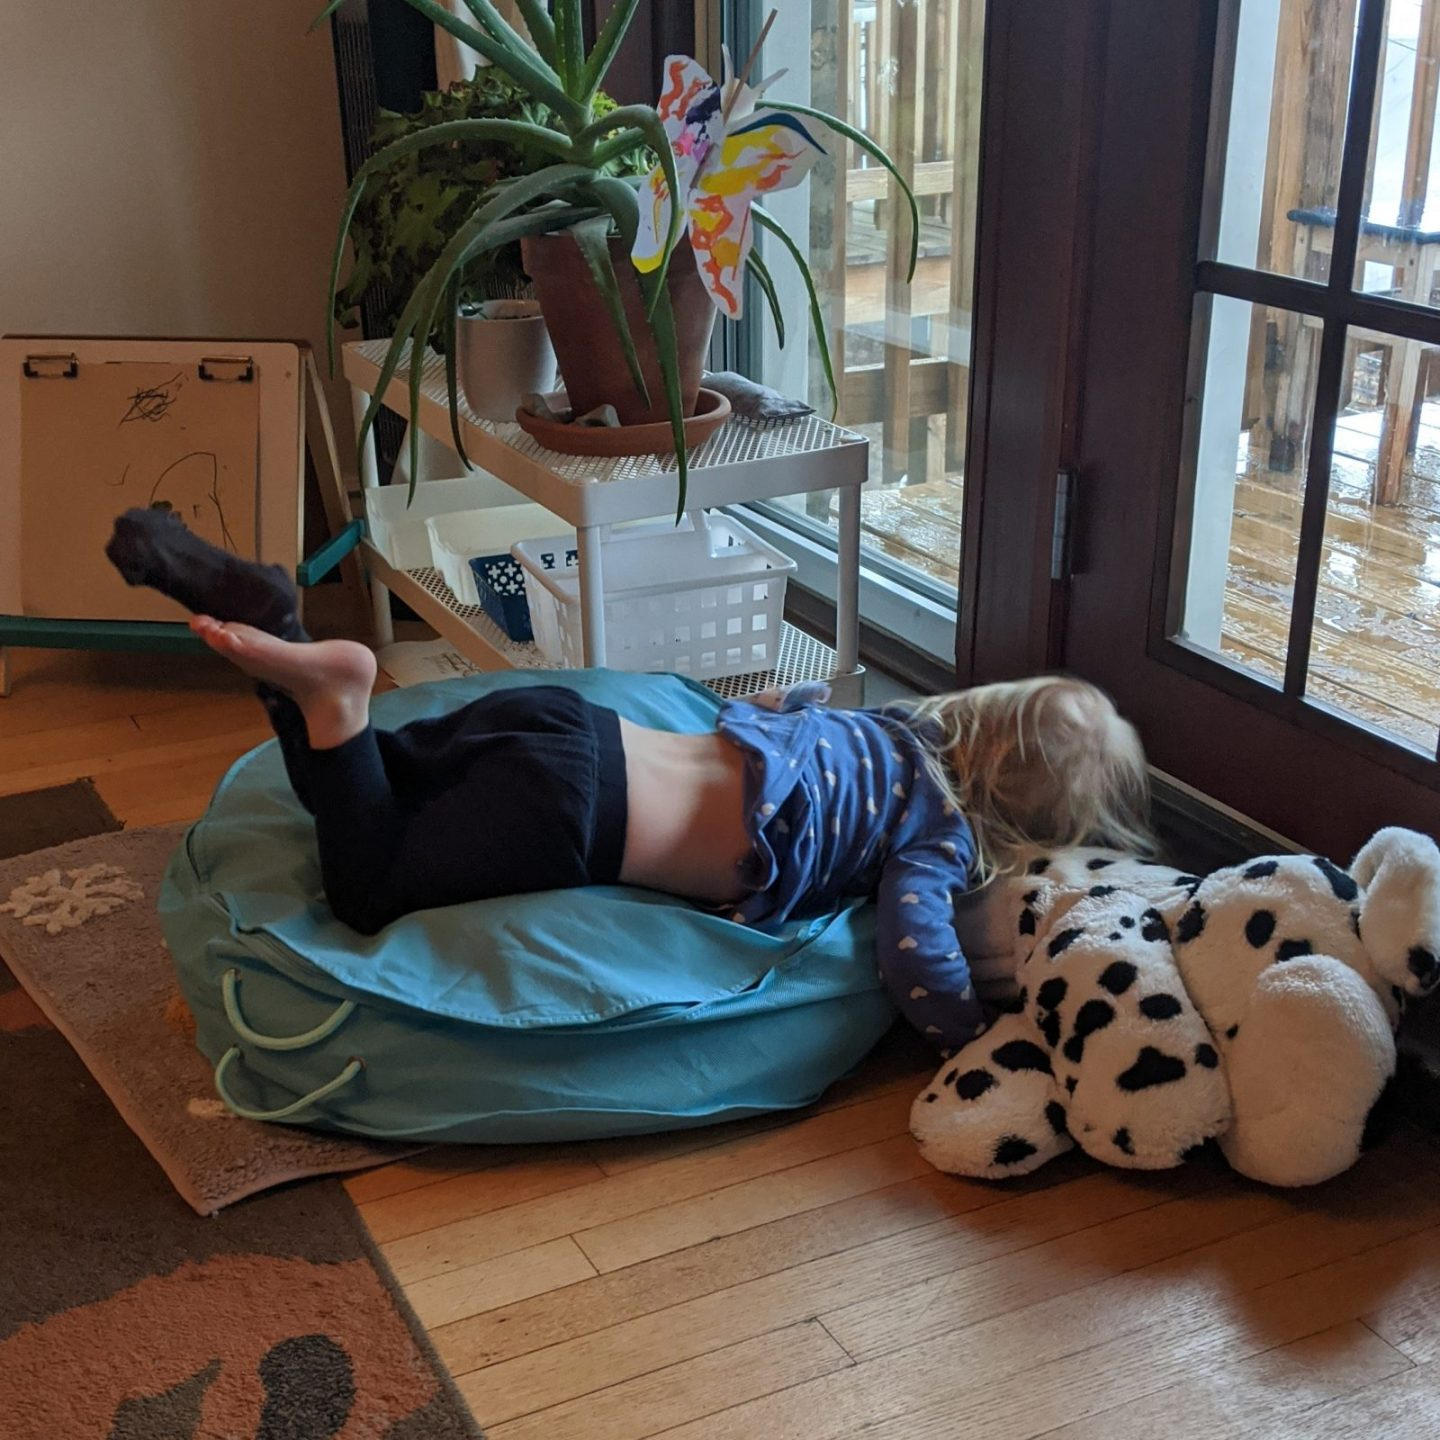 child diving face-first onto floor pillow